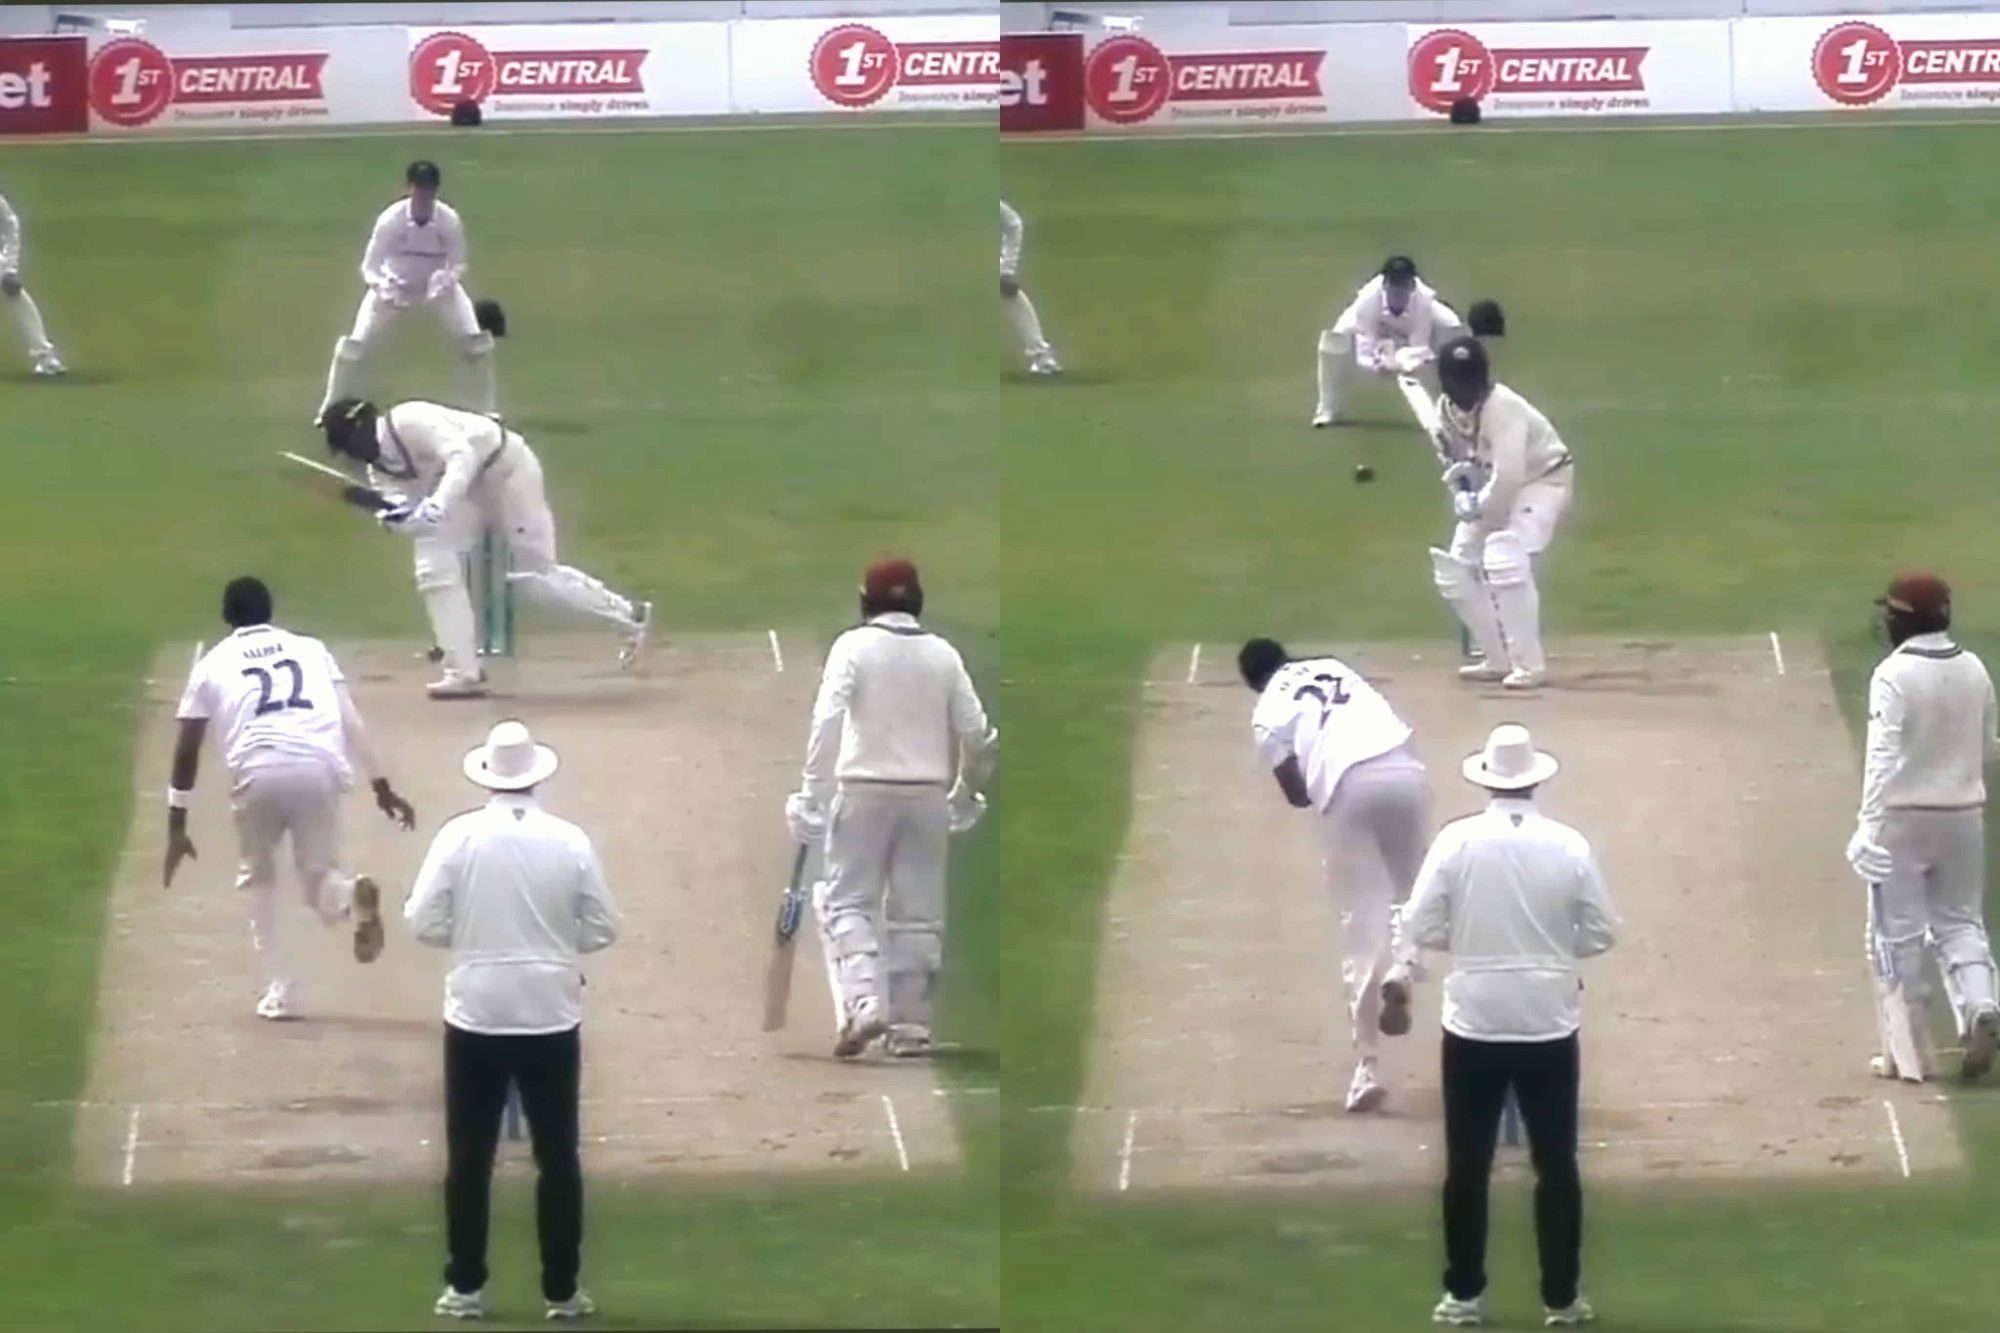 Watch: Jofra Archer Bowls A Banana Inswinger To Dismiss The Batsman During Second Eleven Championship